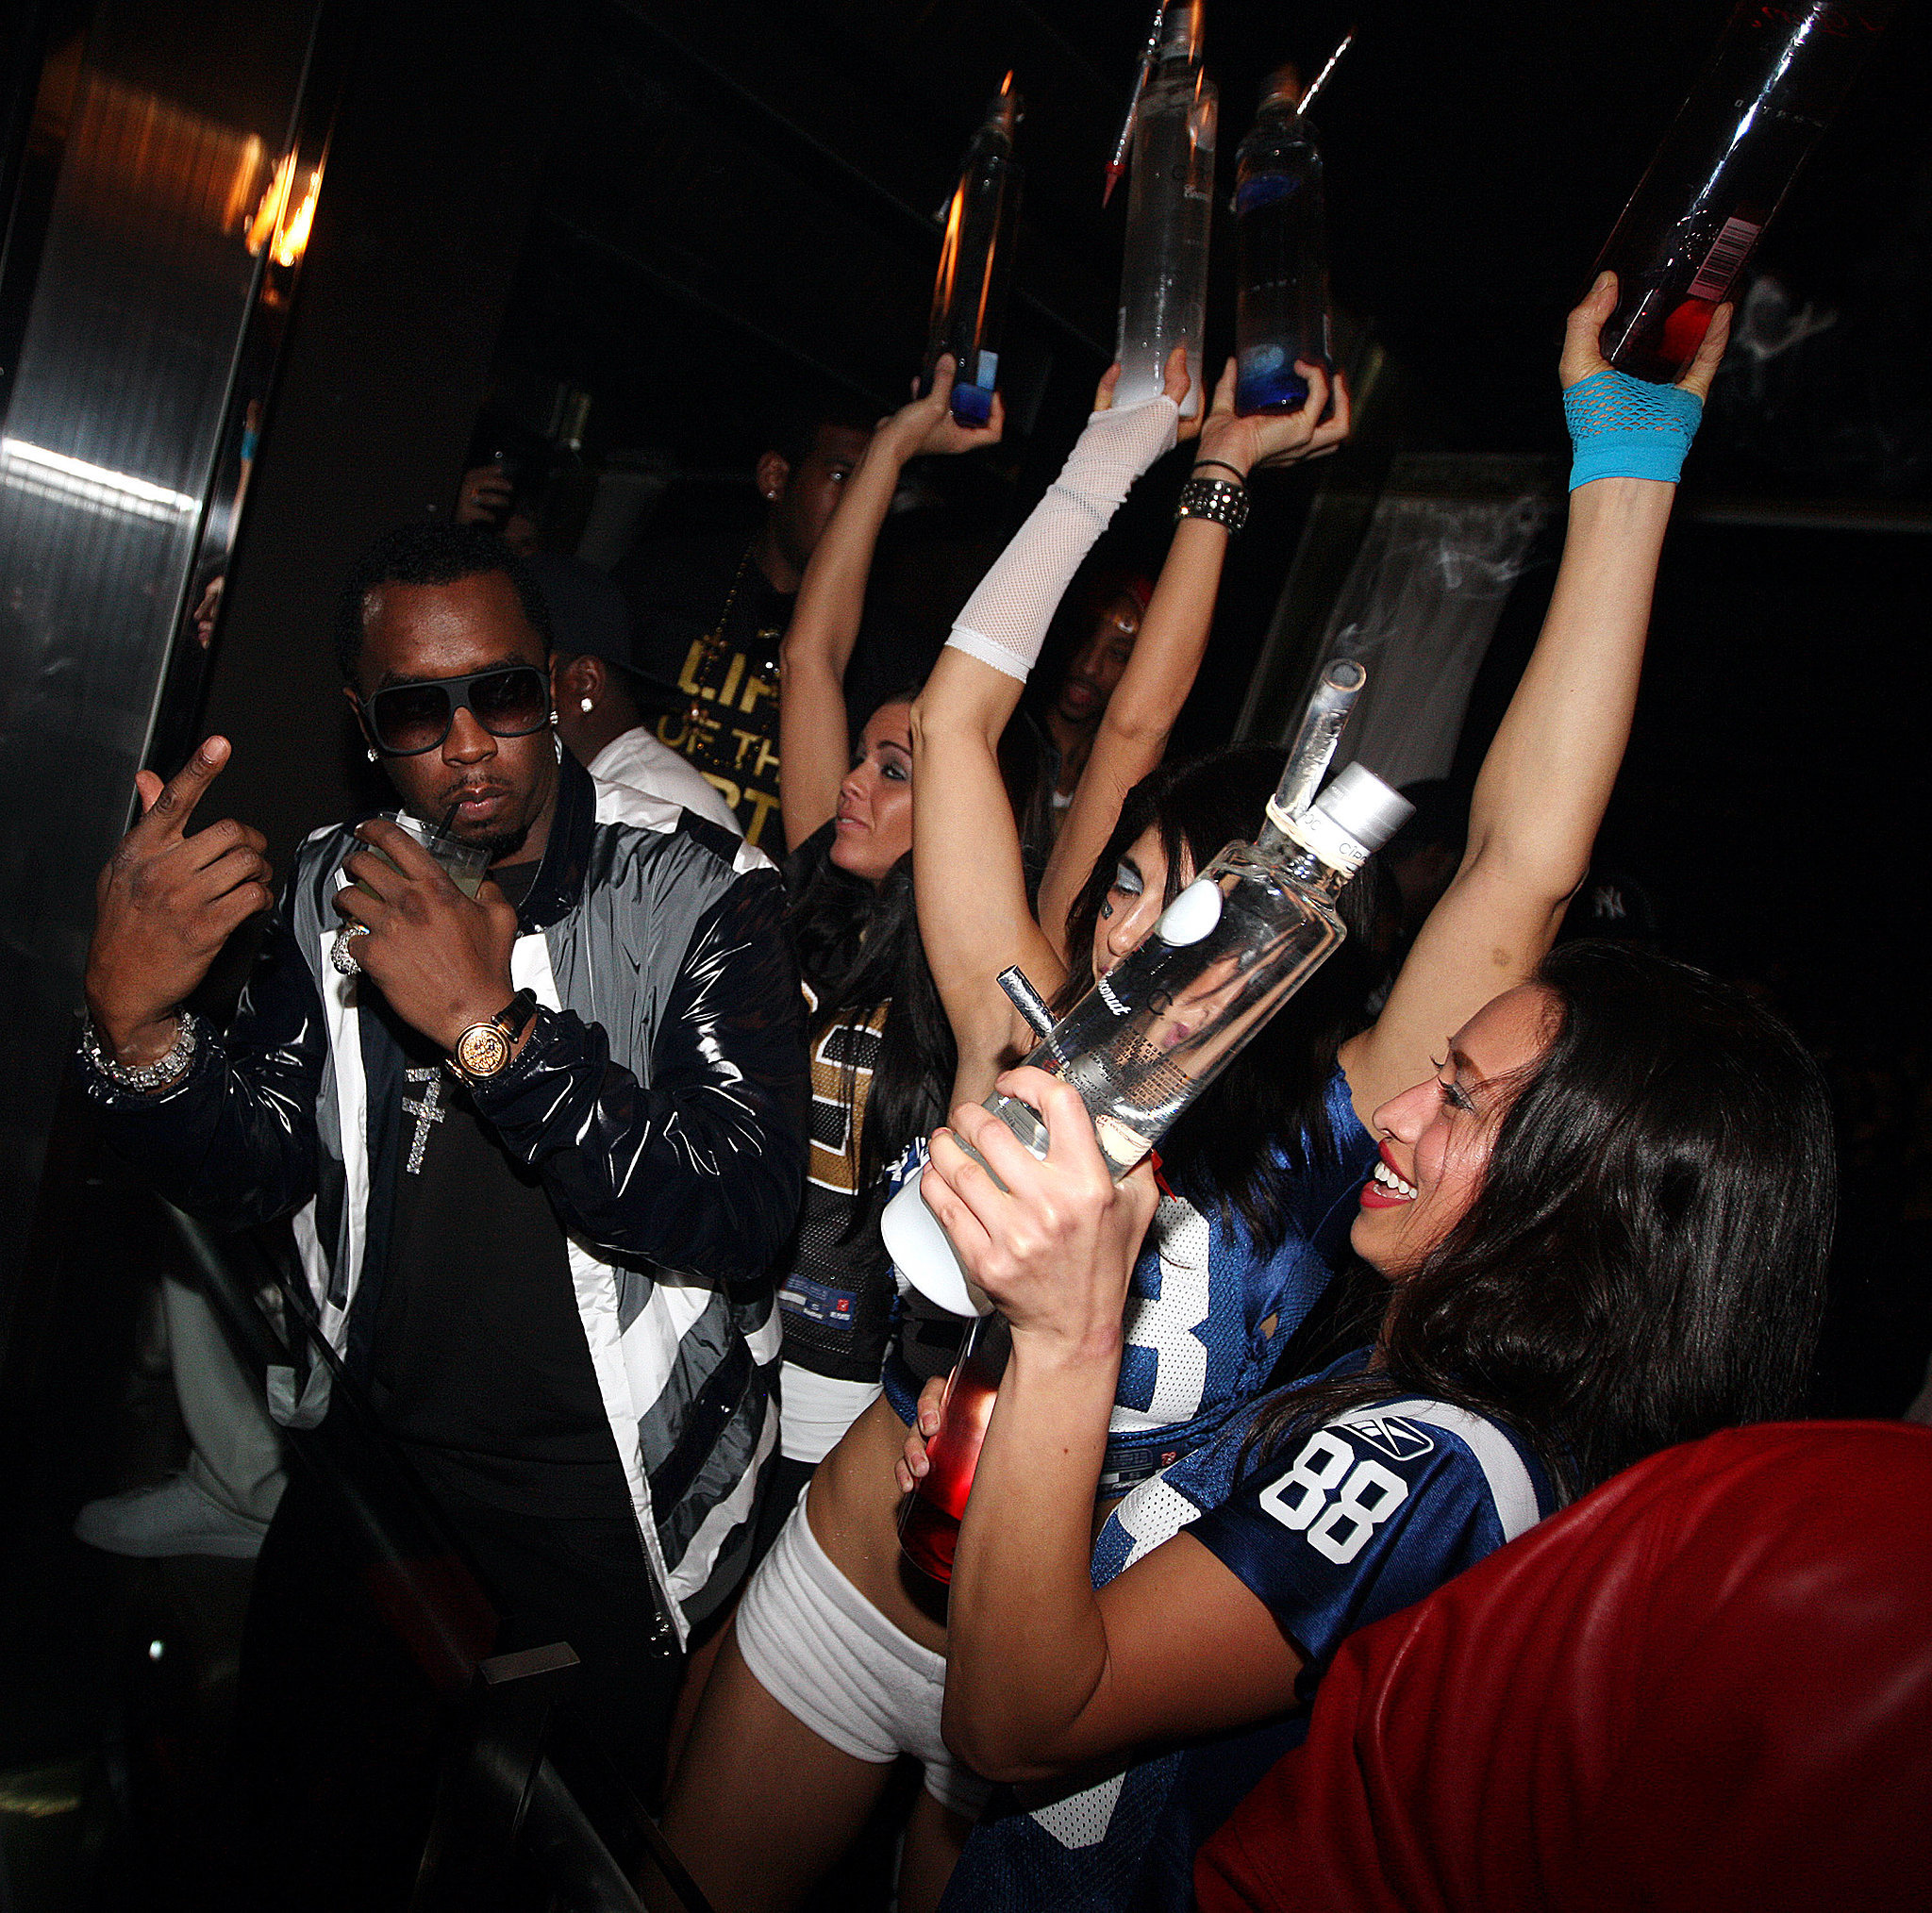 P. Diddy proved nobody throws a party like he does at the Axe